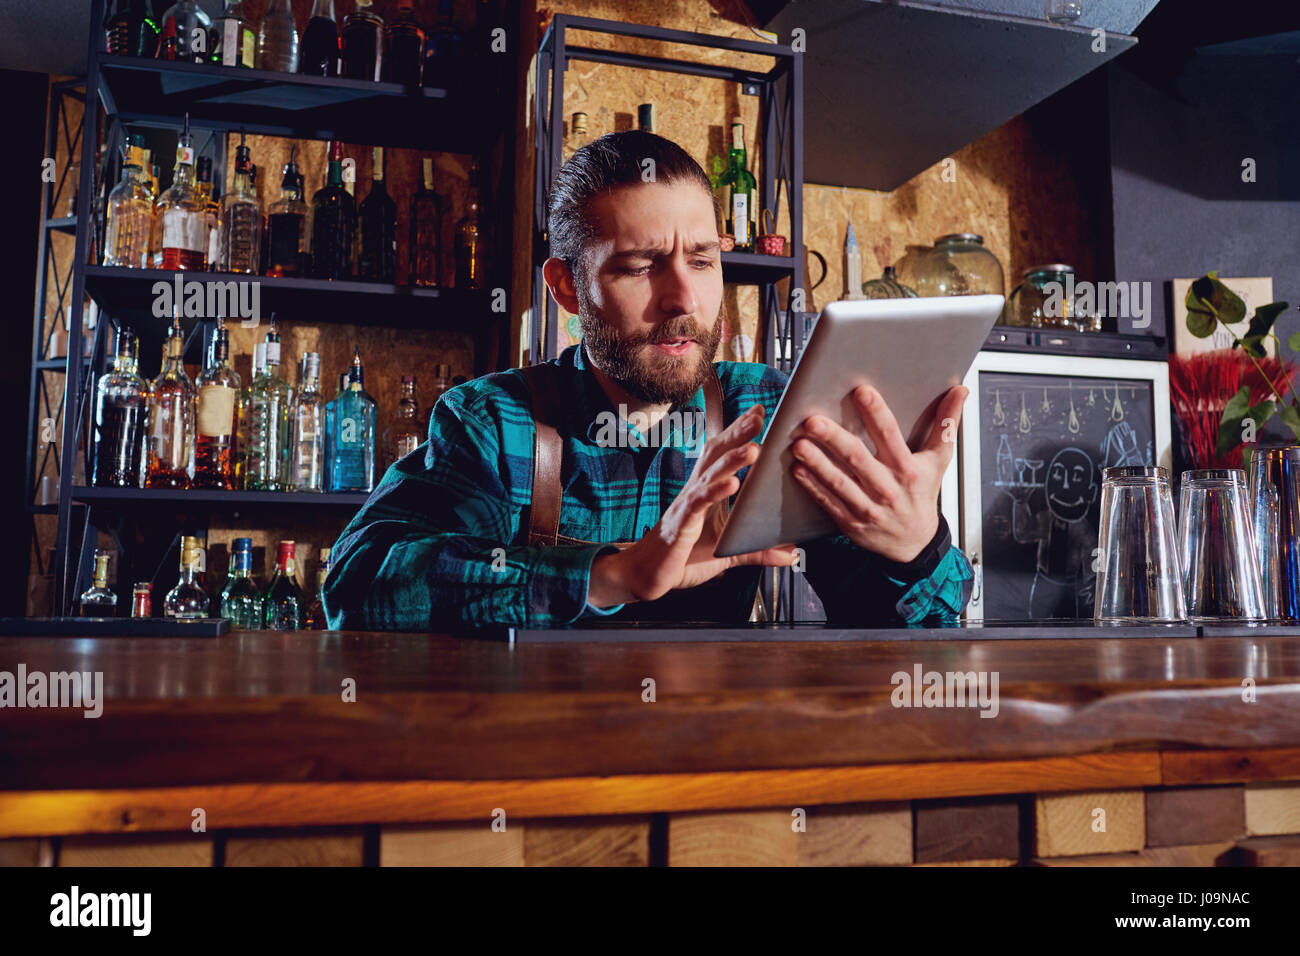 Waiters, bartenders barista work with the tablet in cafe bar res - Stock Image